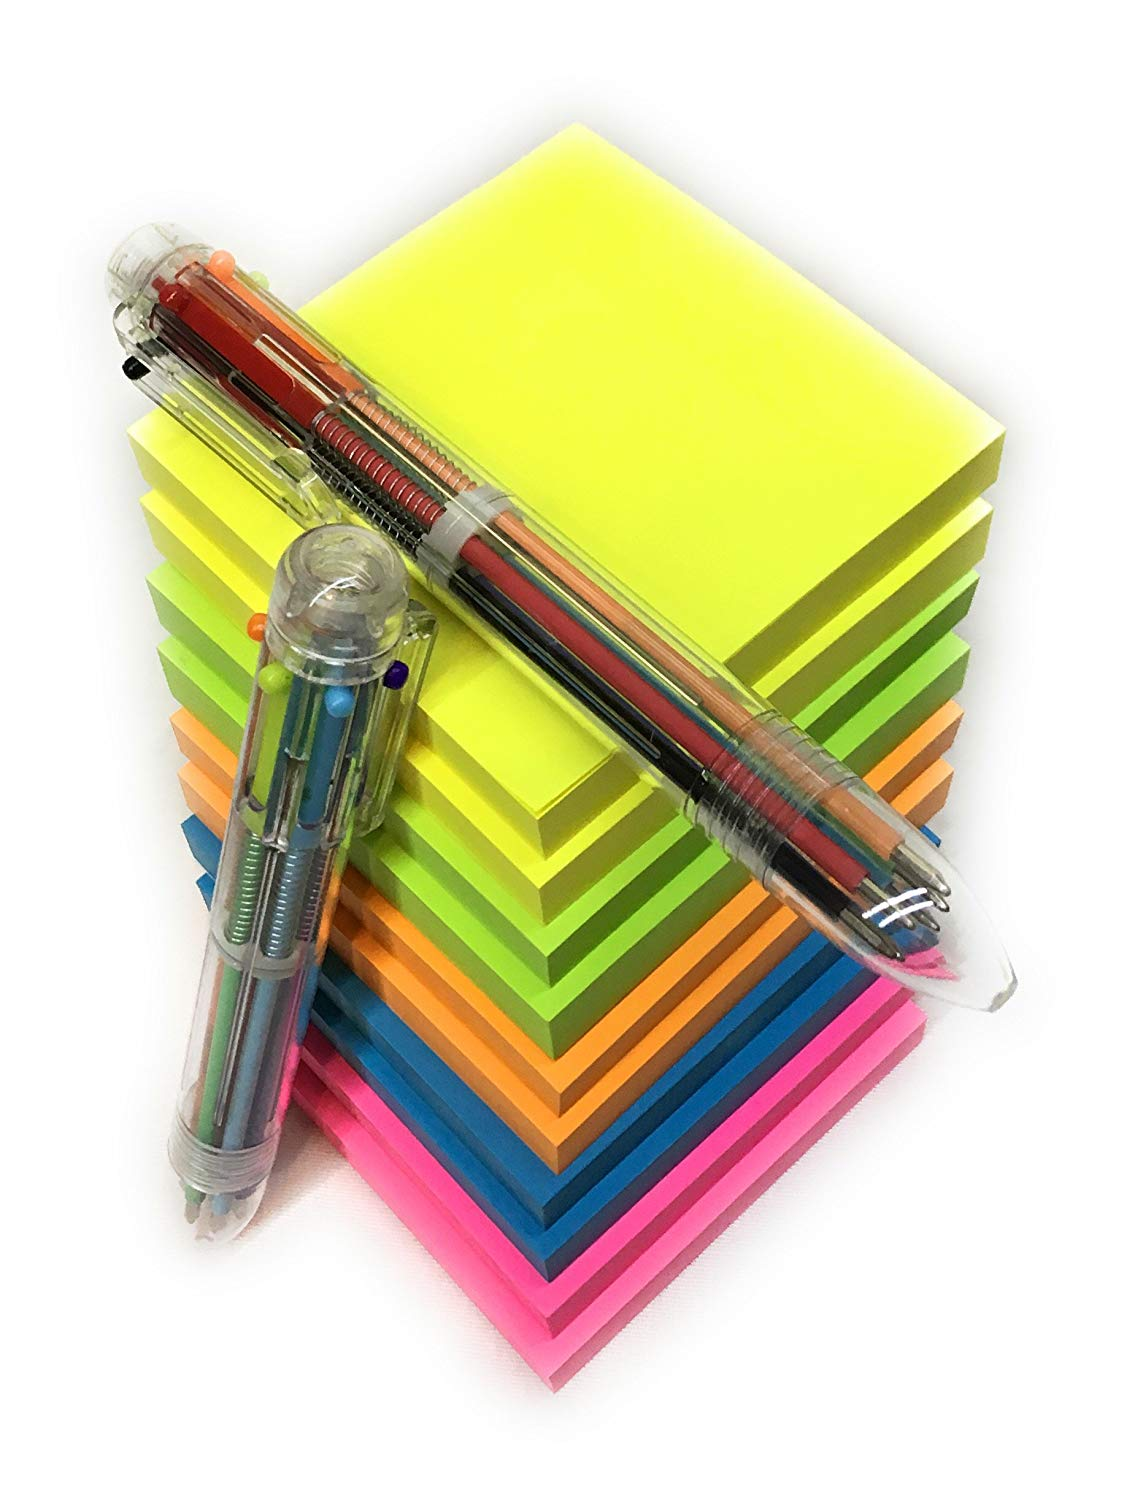 Sticky notes 3x3, 10 pack/100 sheets, 5 bright colors blue pink yellow orange and green, with 2 multi color pens 6 bright colors for school students home/office, Notas adhesivas, Boligrafos multicolor